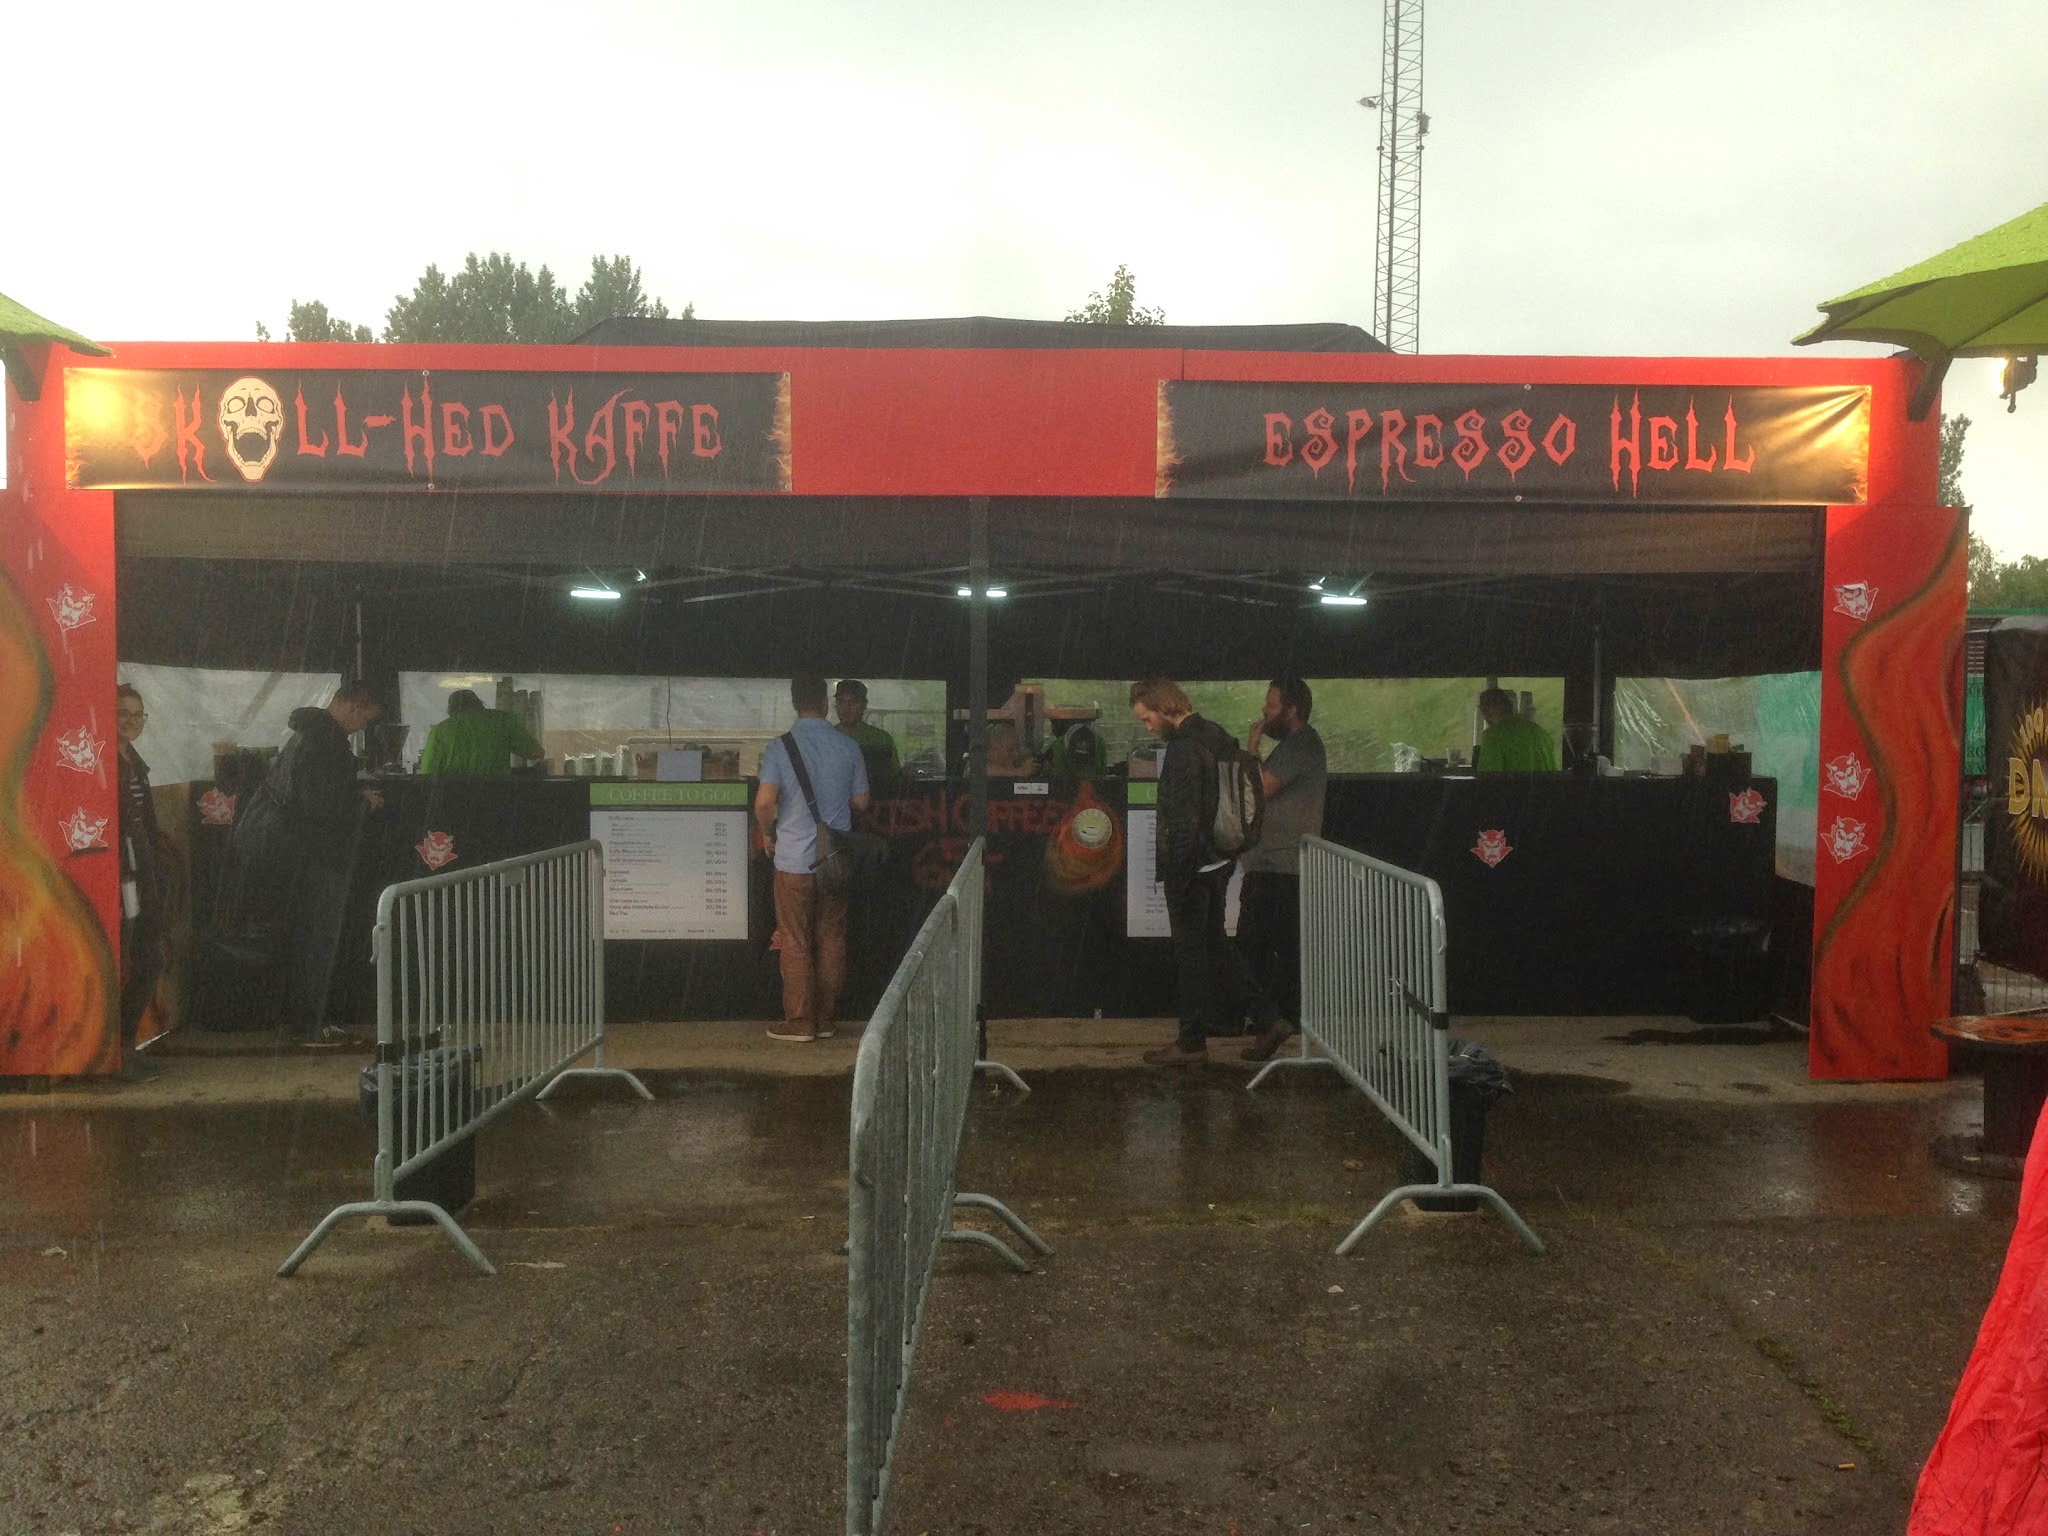 Theme coffee bar at Copenhell music festival - Kalles Kaffe